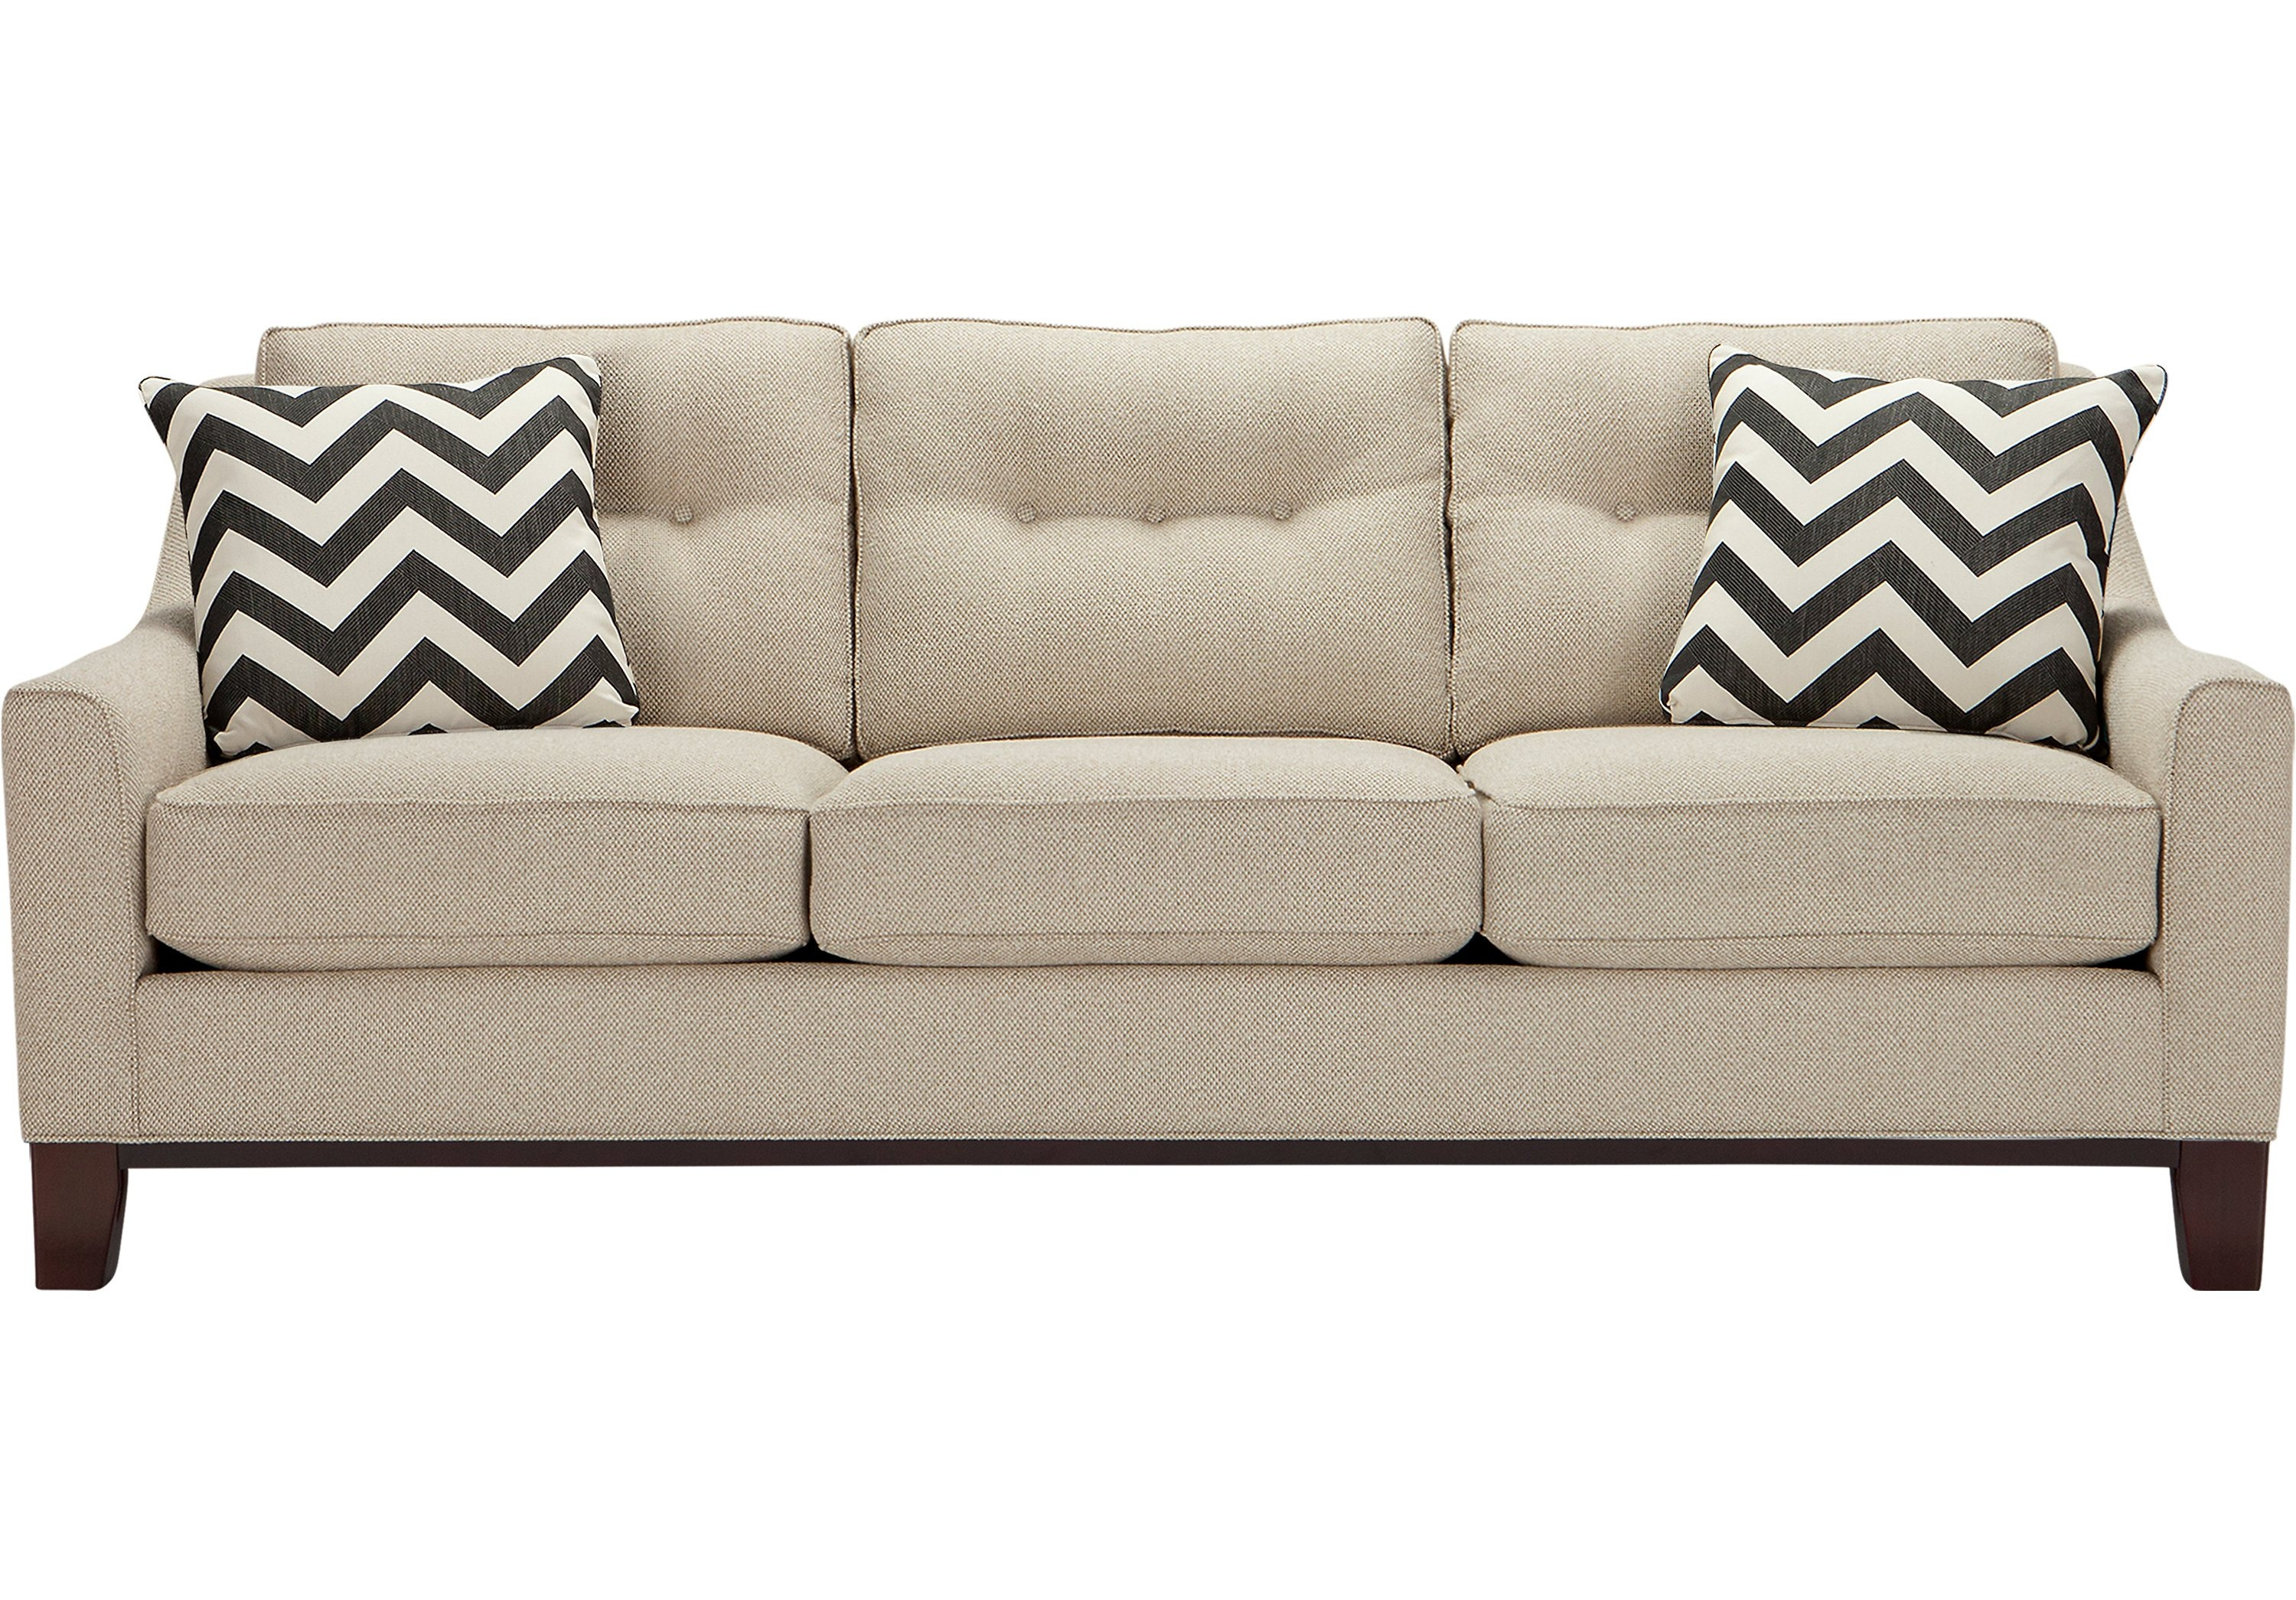 25 Best Ideas About Sectional Sofa Decor On Pinterest Living For In Cindy Crawford Sofas (View 7 of 15)